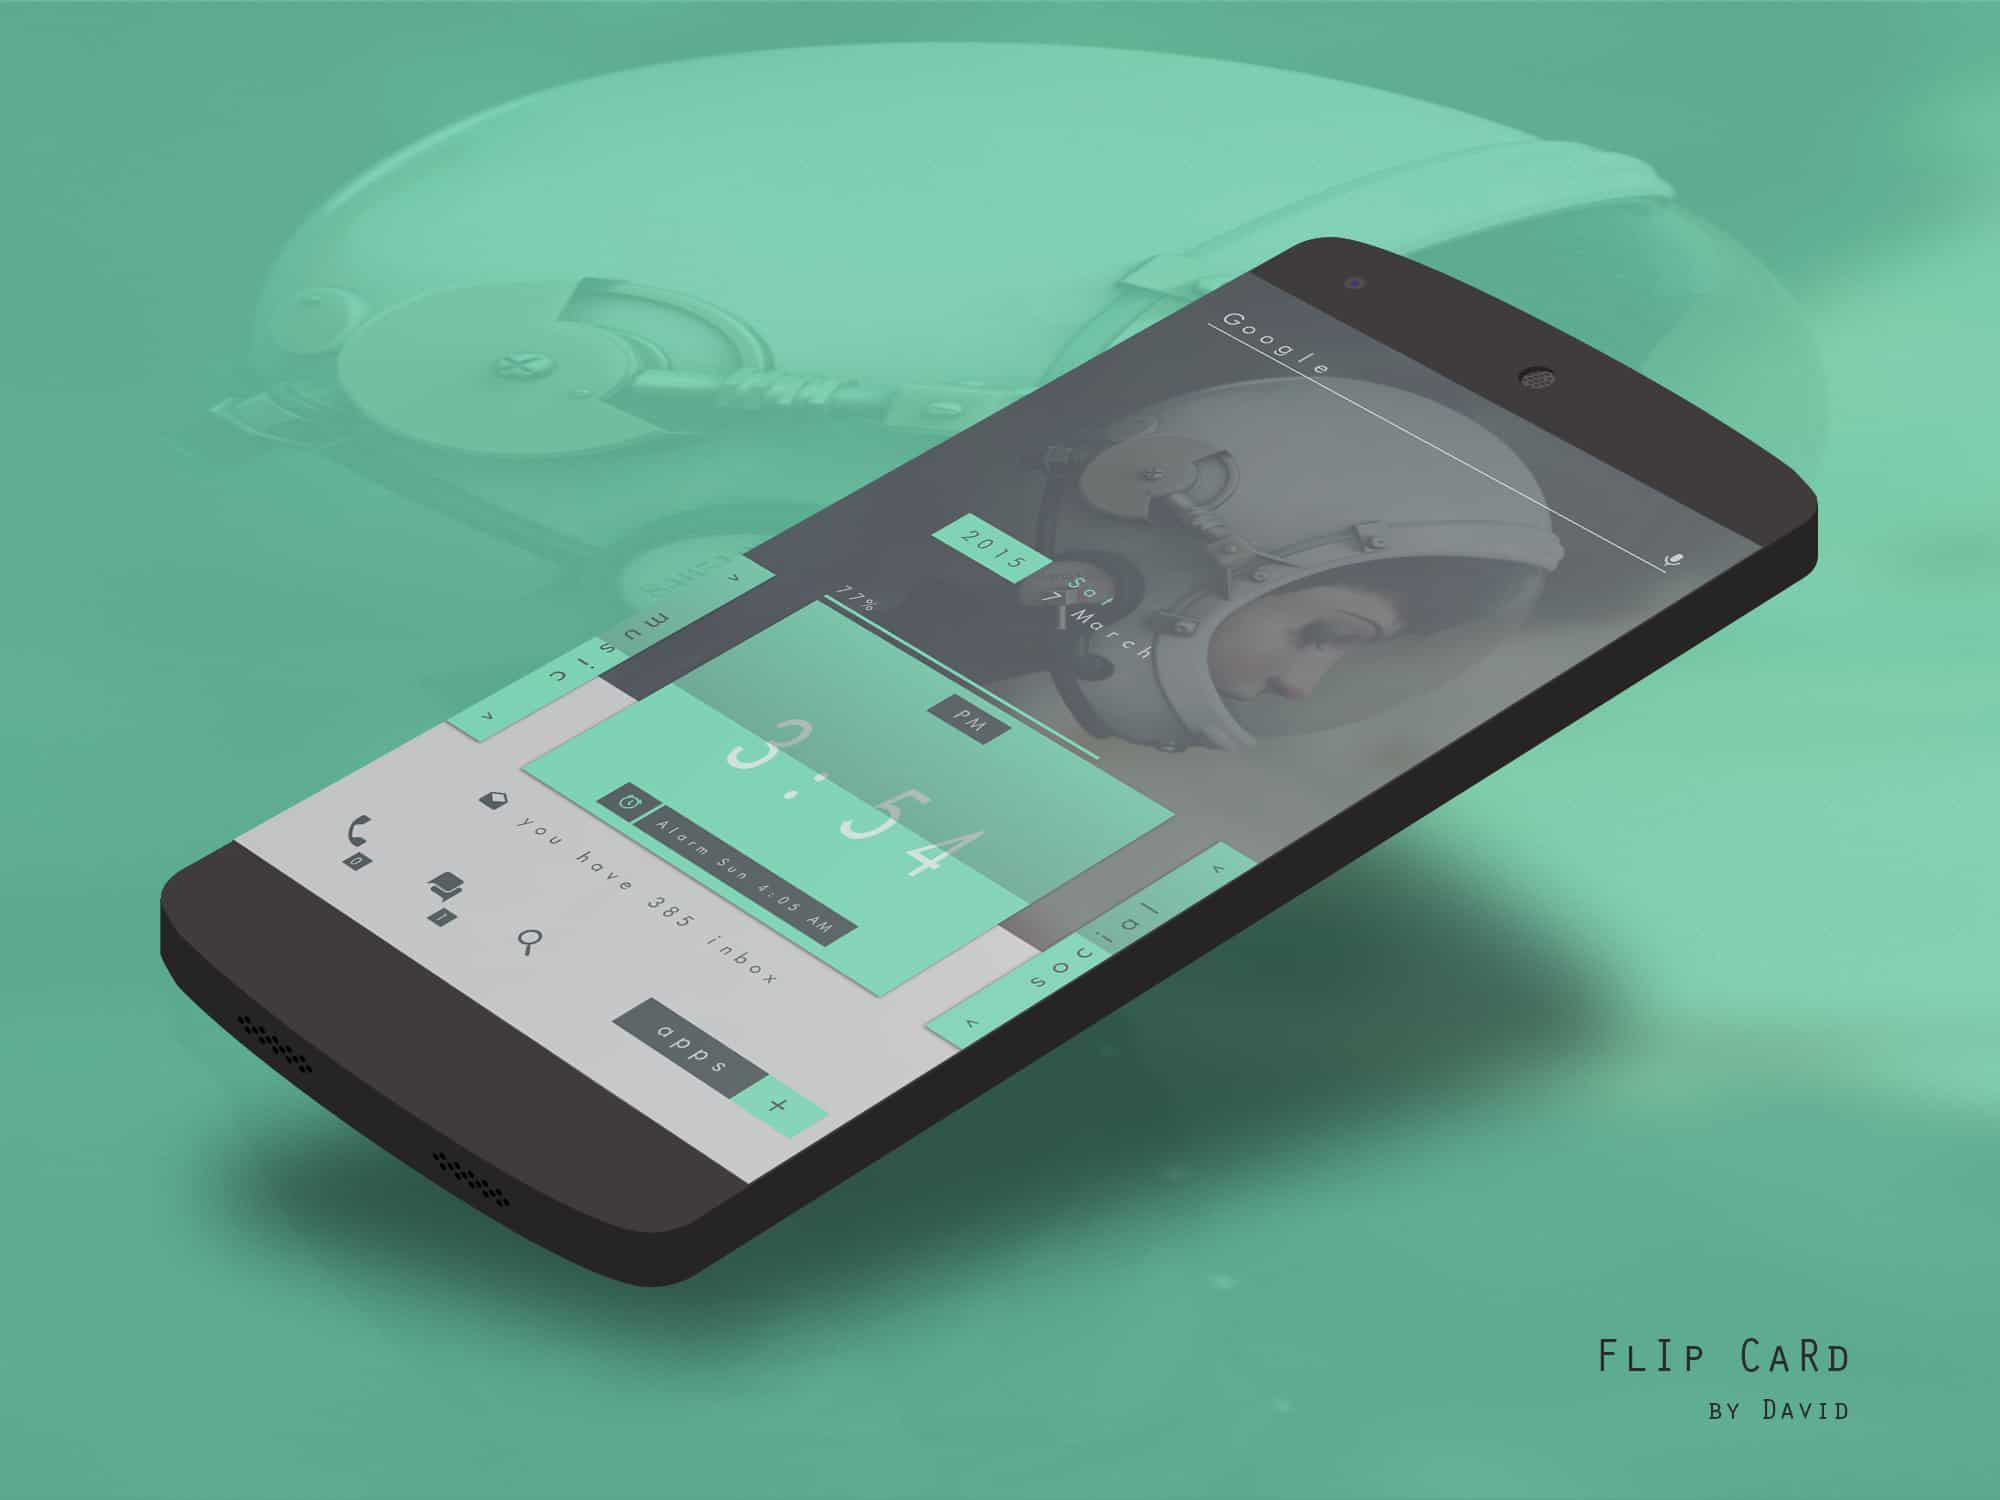 Top Android Homescreen March 13th Edition: Flip Card ...